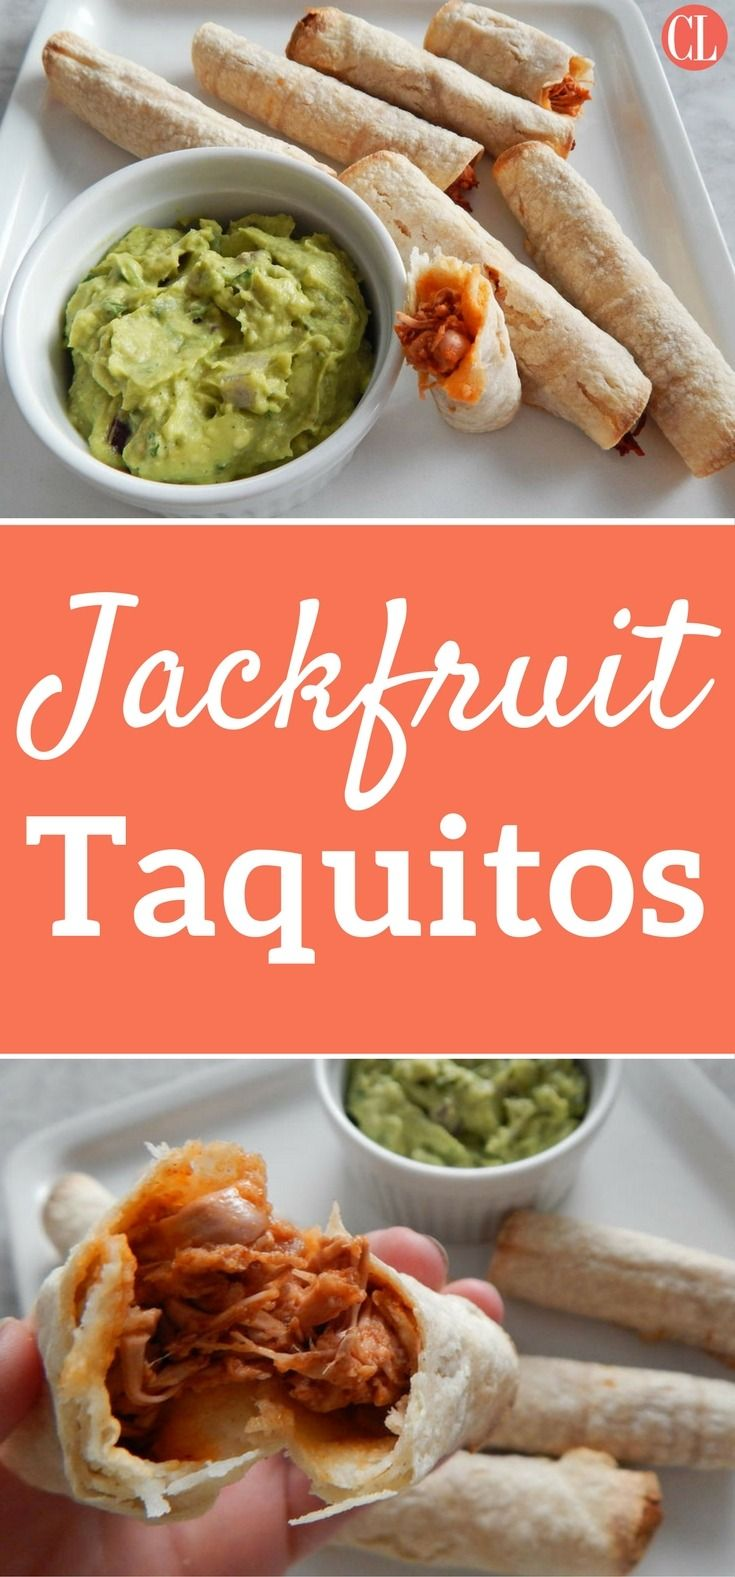 Crispy, spicy, and totally plant-based, these vegan taquitos make the ultimate party finger food. Shredded jackfruit mimics the texture of cooked chicken, while being doused in a tangy chipotle-infused sauce. These easy snacks are baked, not fried, to keep the calories low still creating that irresistibly crunchy texture. Serve with homemade guacamole on the side to cool down the peppery bite. | Cooking Light